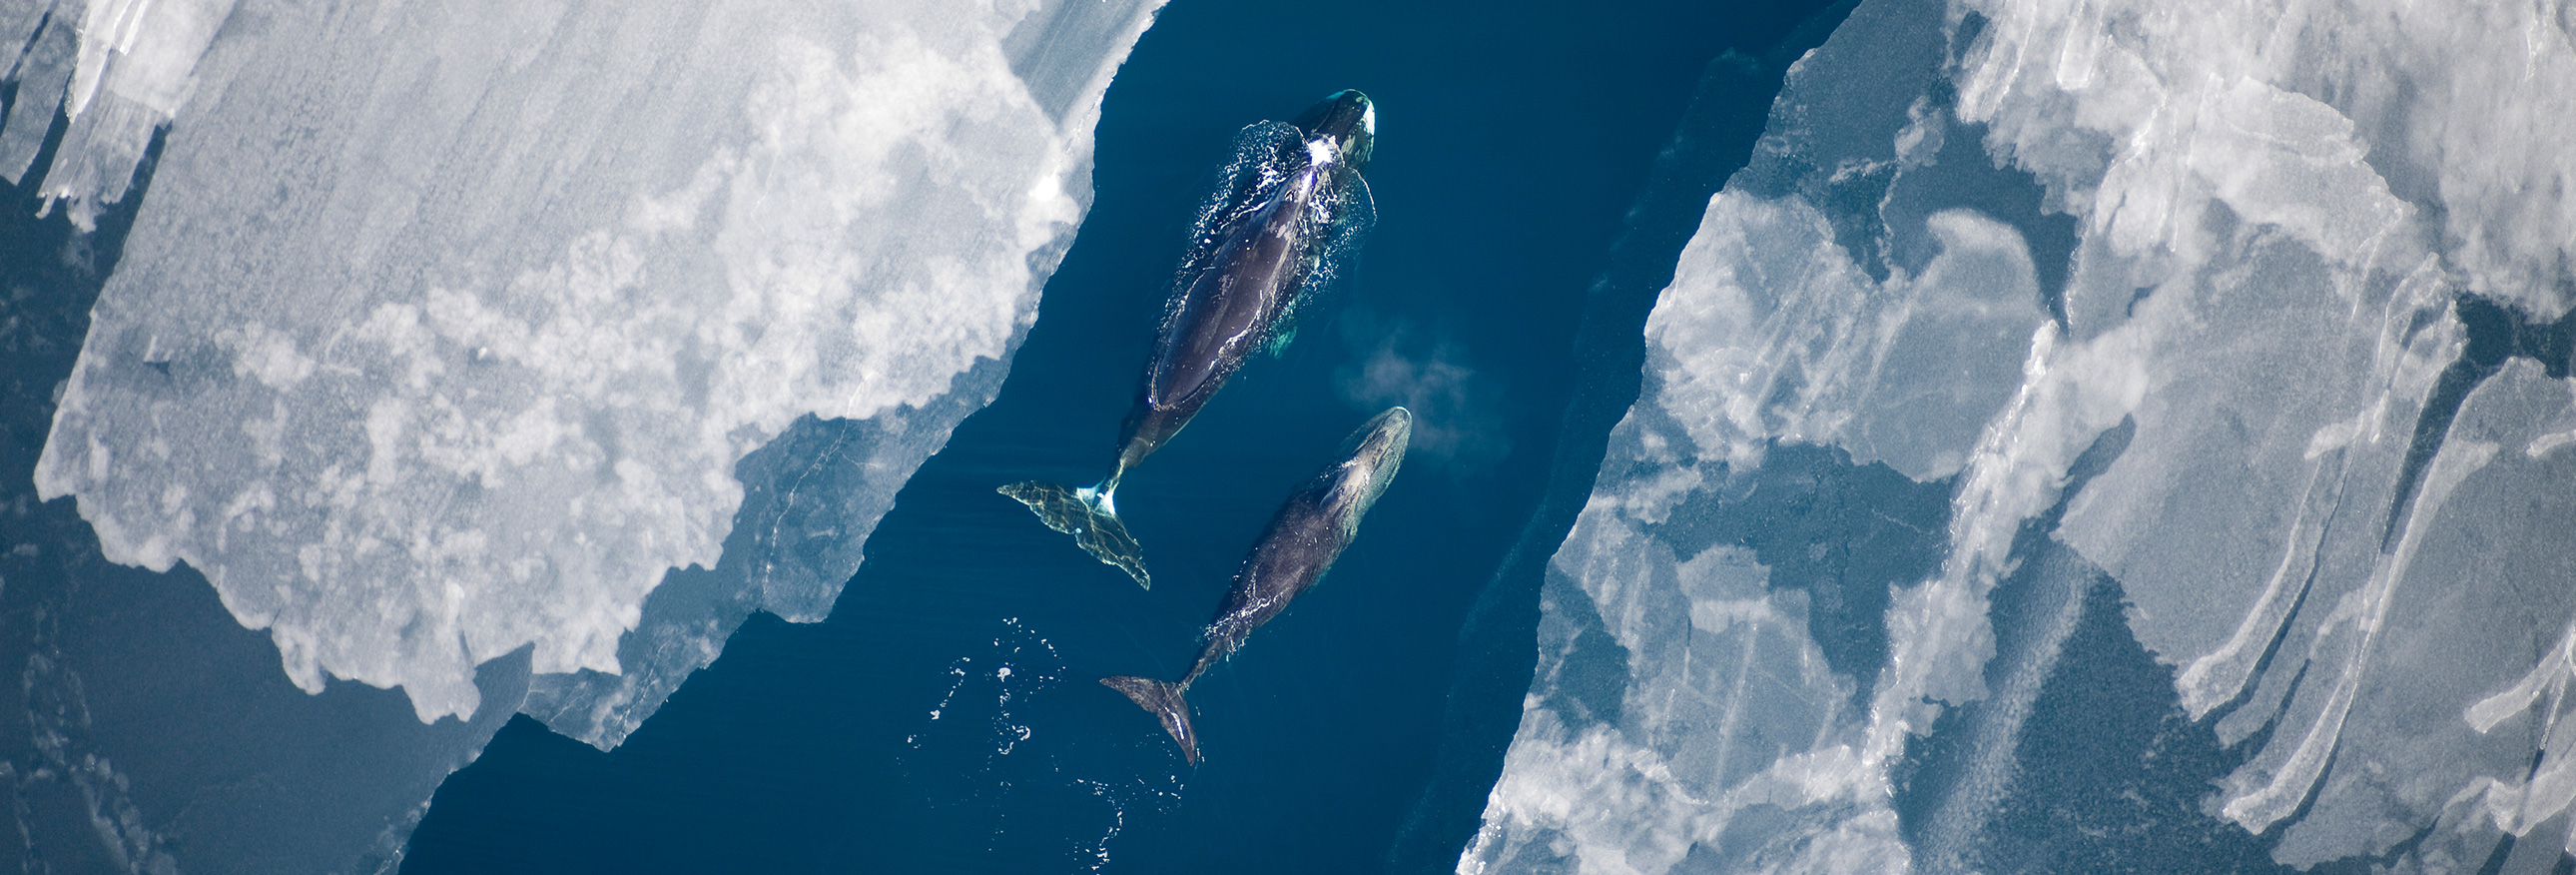 whales swimming between icebergs